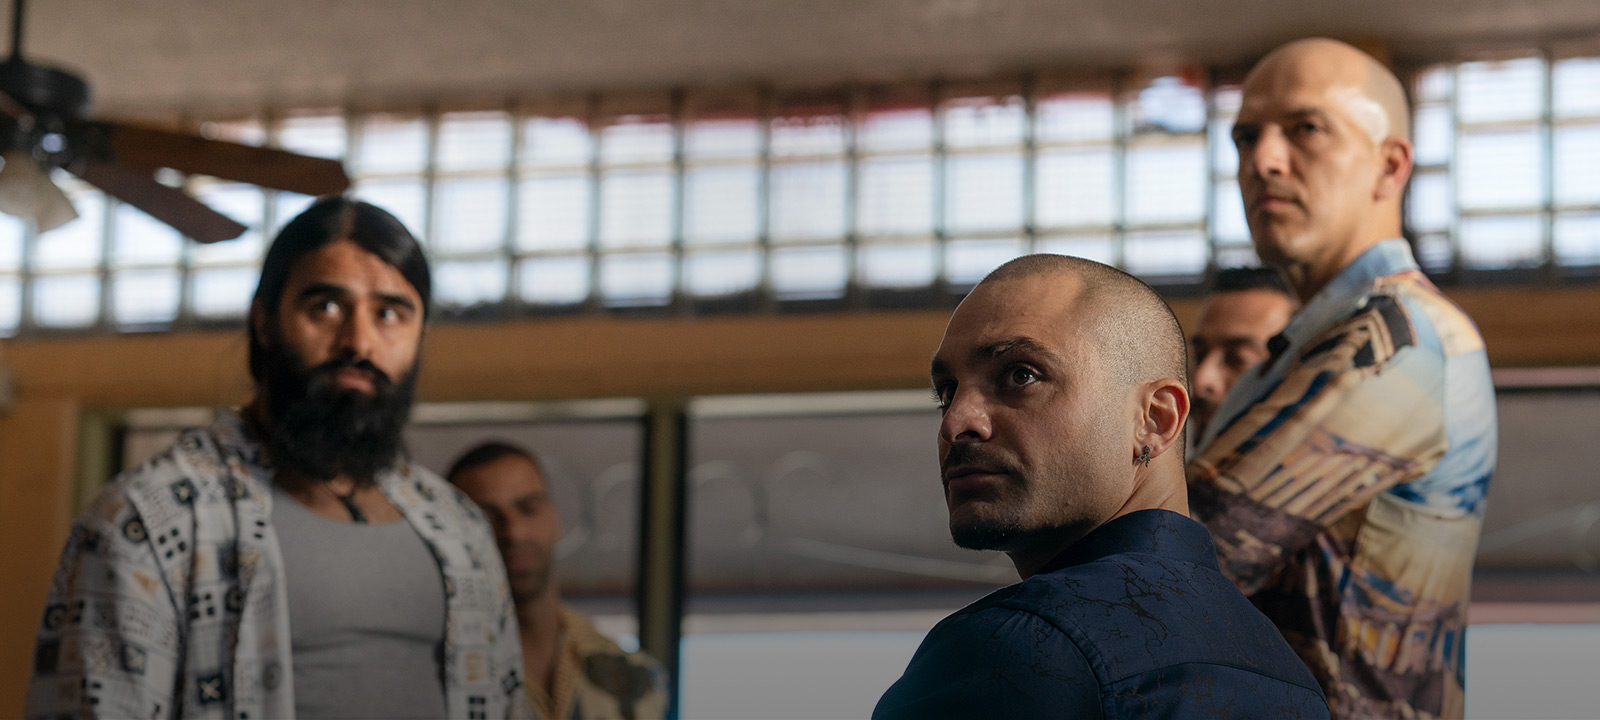 better-call-saul-season-5-episode-2-michael-mando-nacho-varga_502_800x600